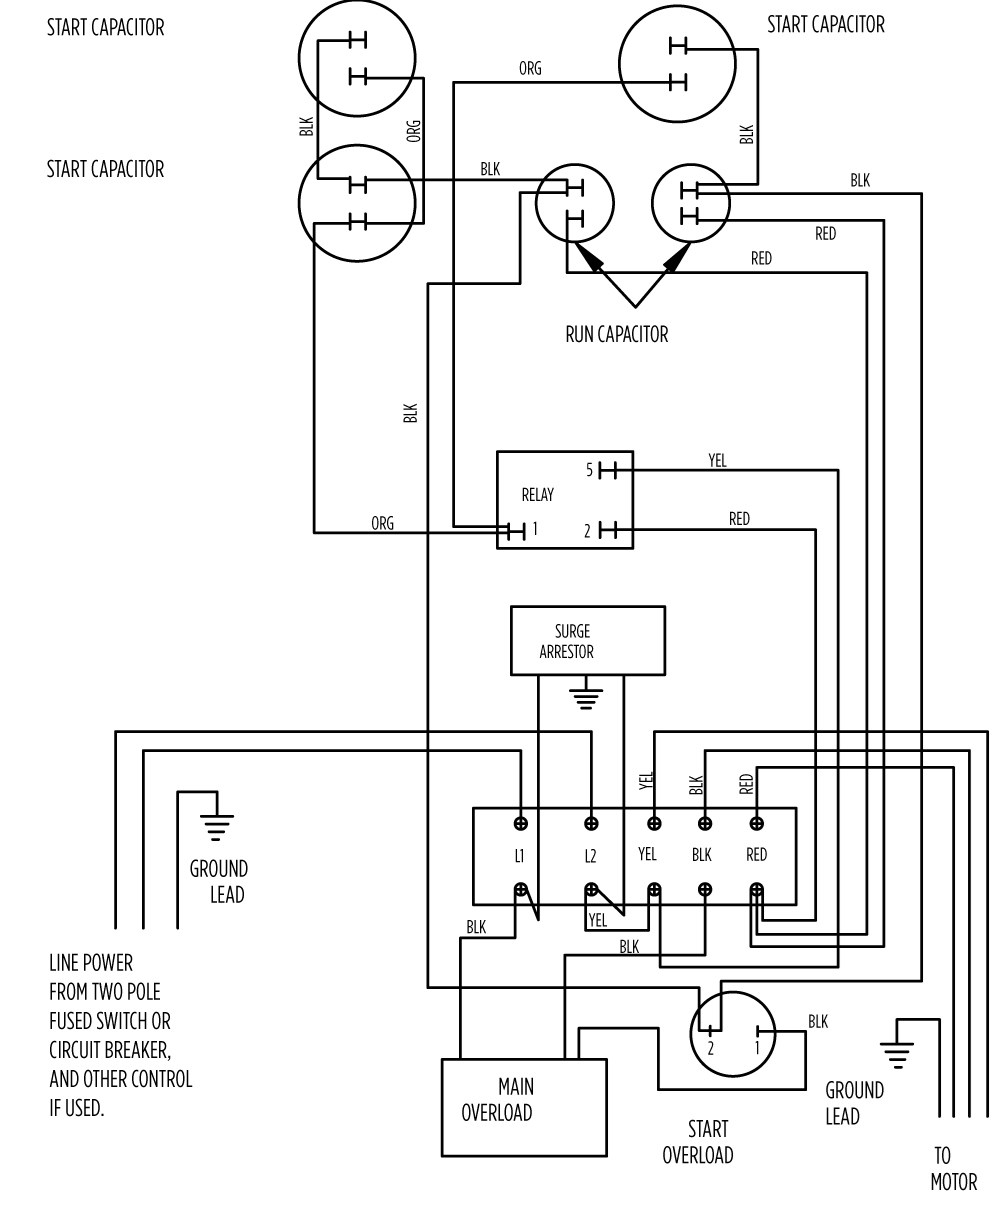 franklin electric wiring diagram wiring diagram write rh 2 lmn bolonka zwetna von der laisbach de